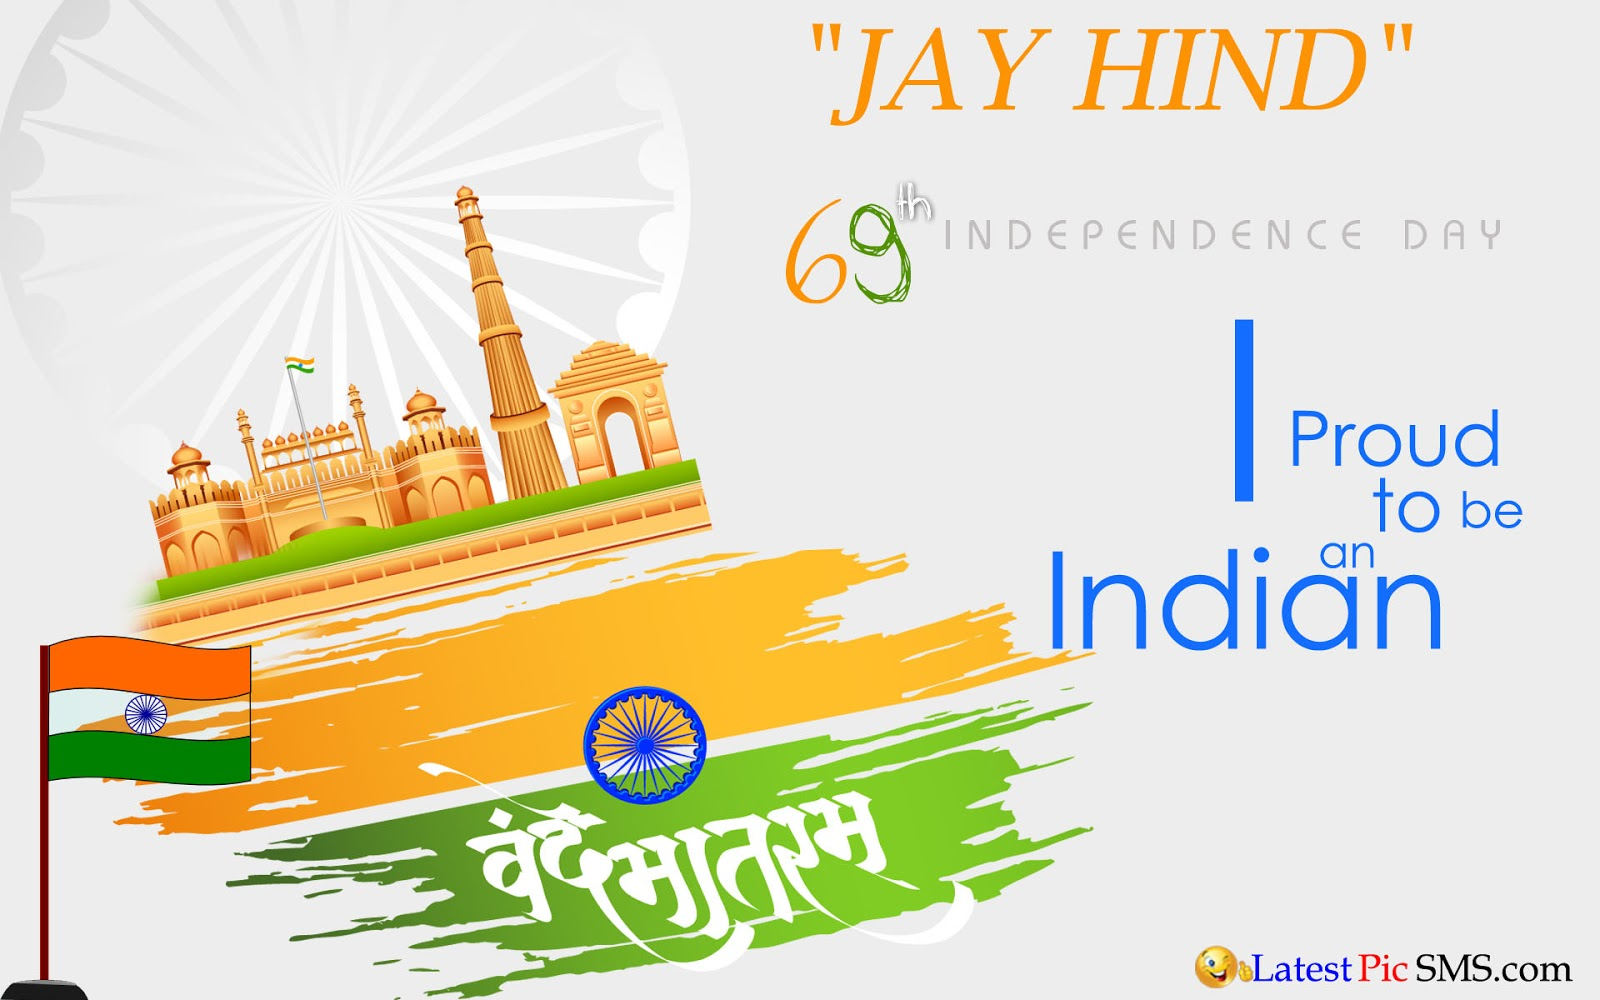 69th Happy Independence Day 2015 - The Celebration of Independence Day of India for Whatsapp & Facebook